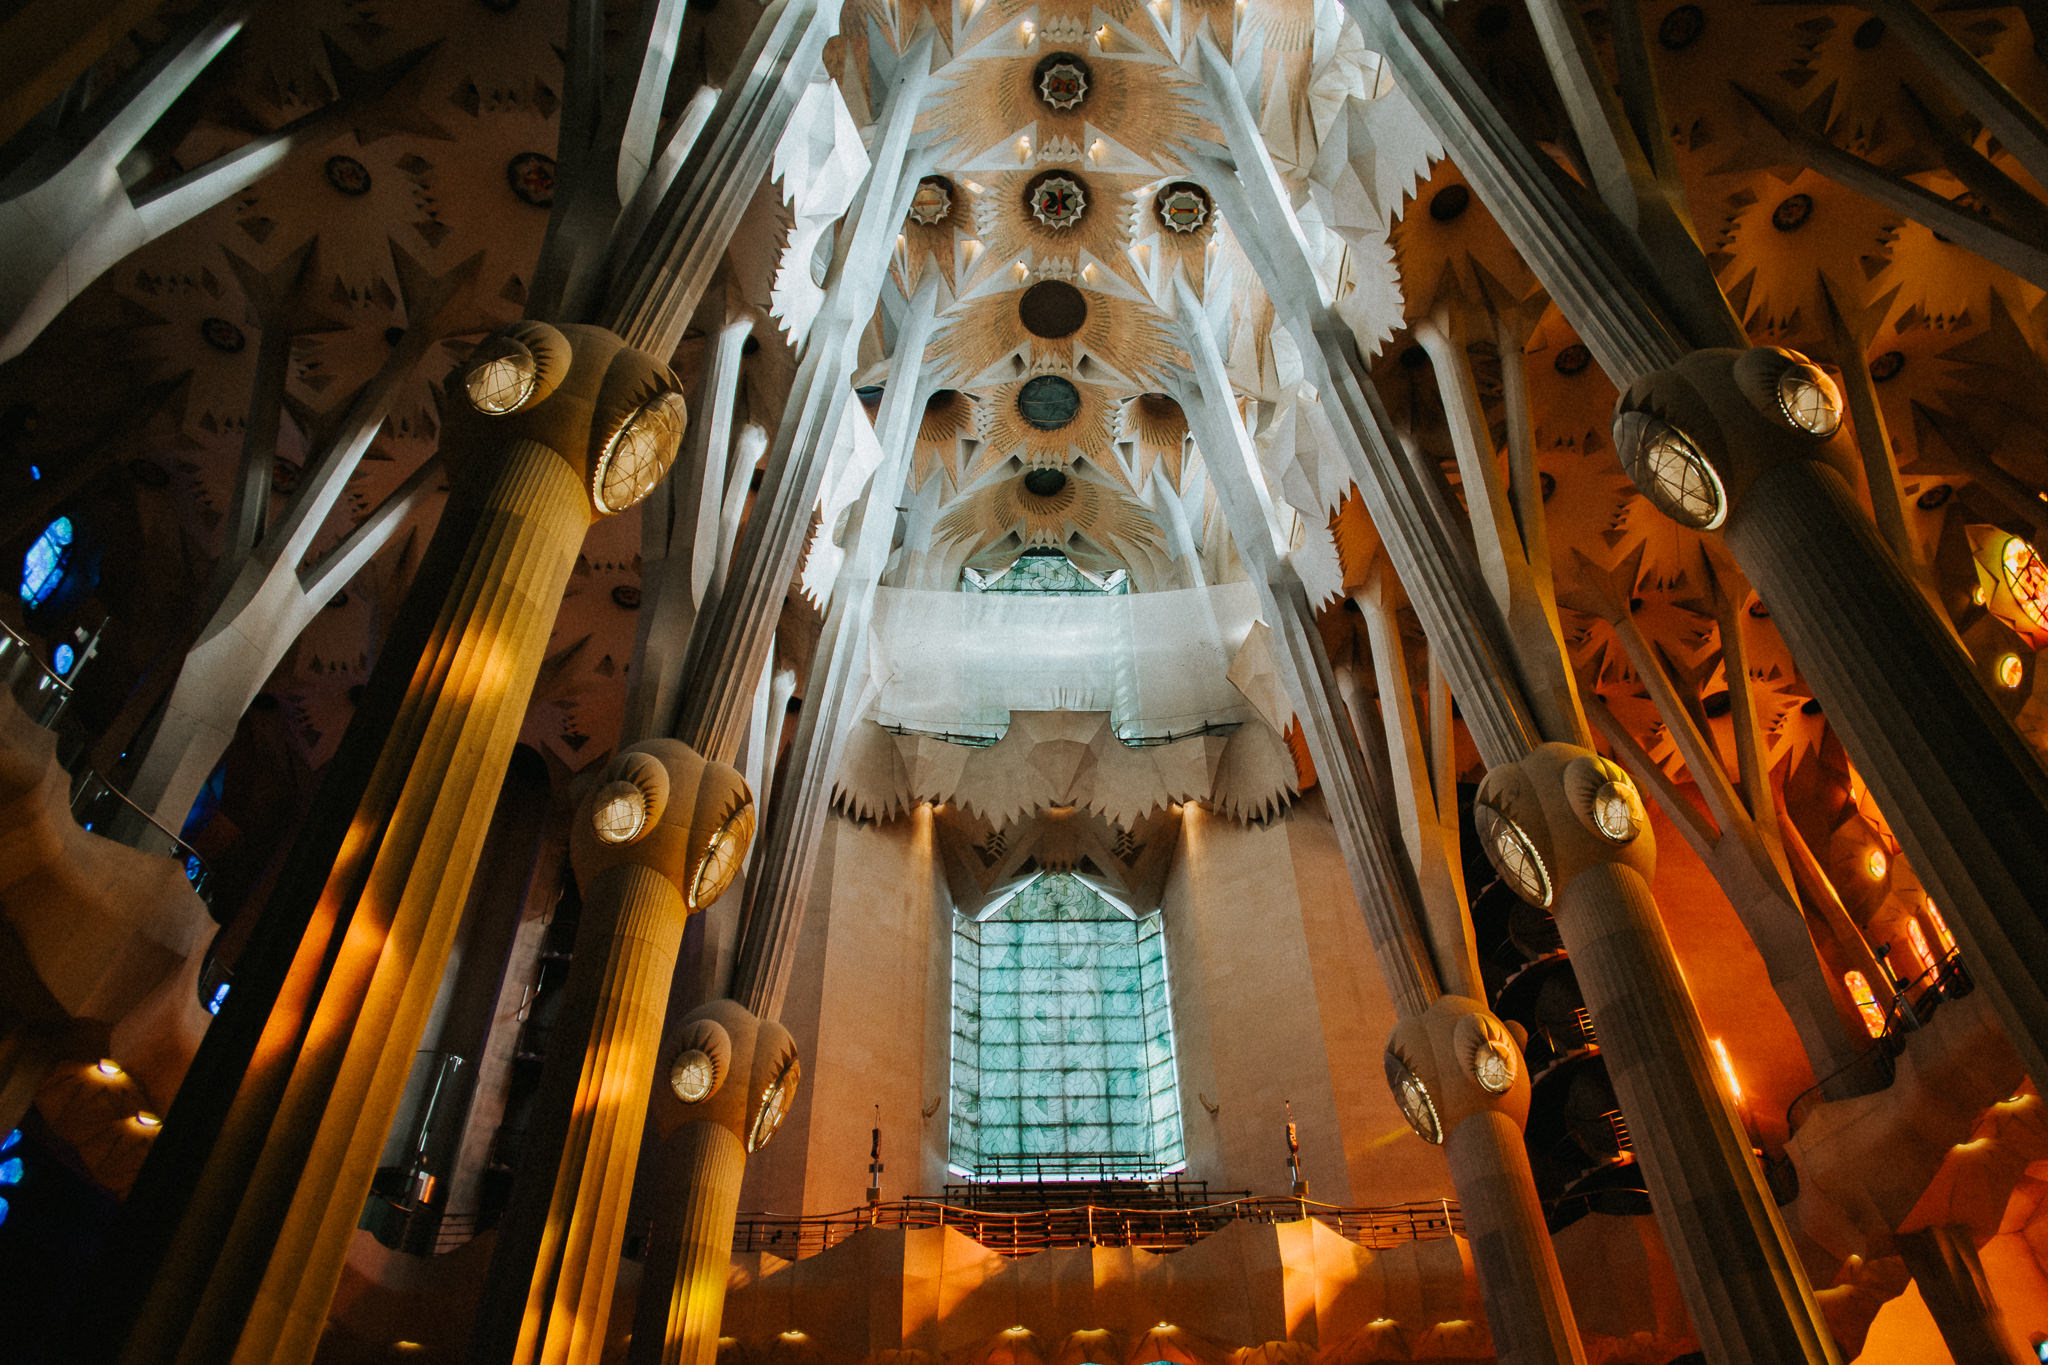 Sagrada Familia ceiling stained glass light back columns pillar